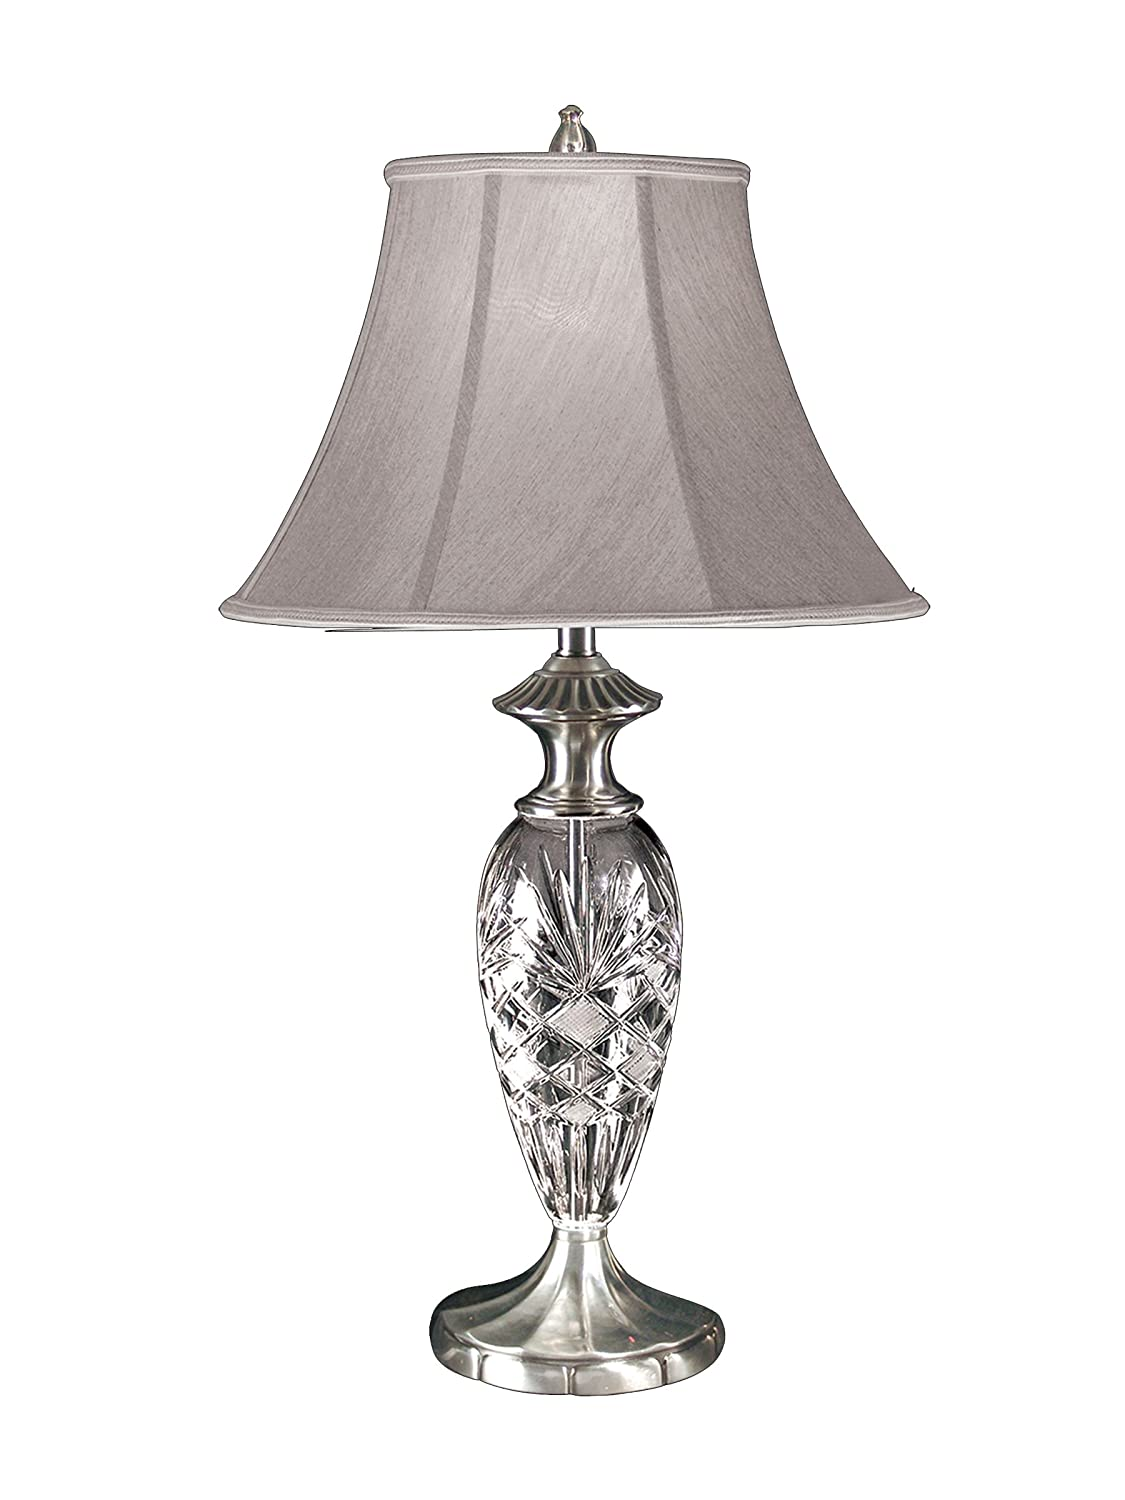 Dale tiffany gt80117 britney crystal table lamp antique pewter and dale tiffany gt80117 britney crystal table lamp antique pewter and fabric shade aloadofball Gallery